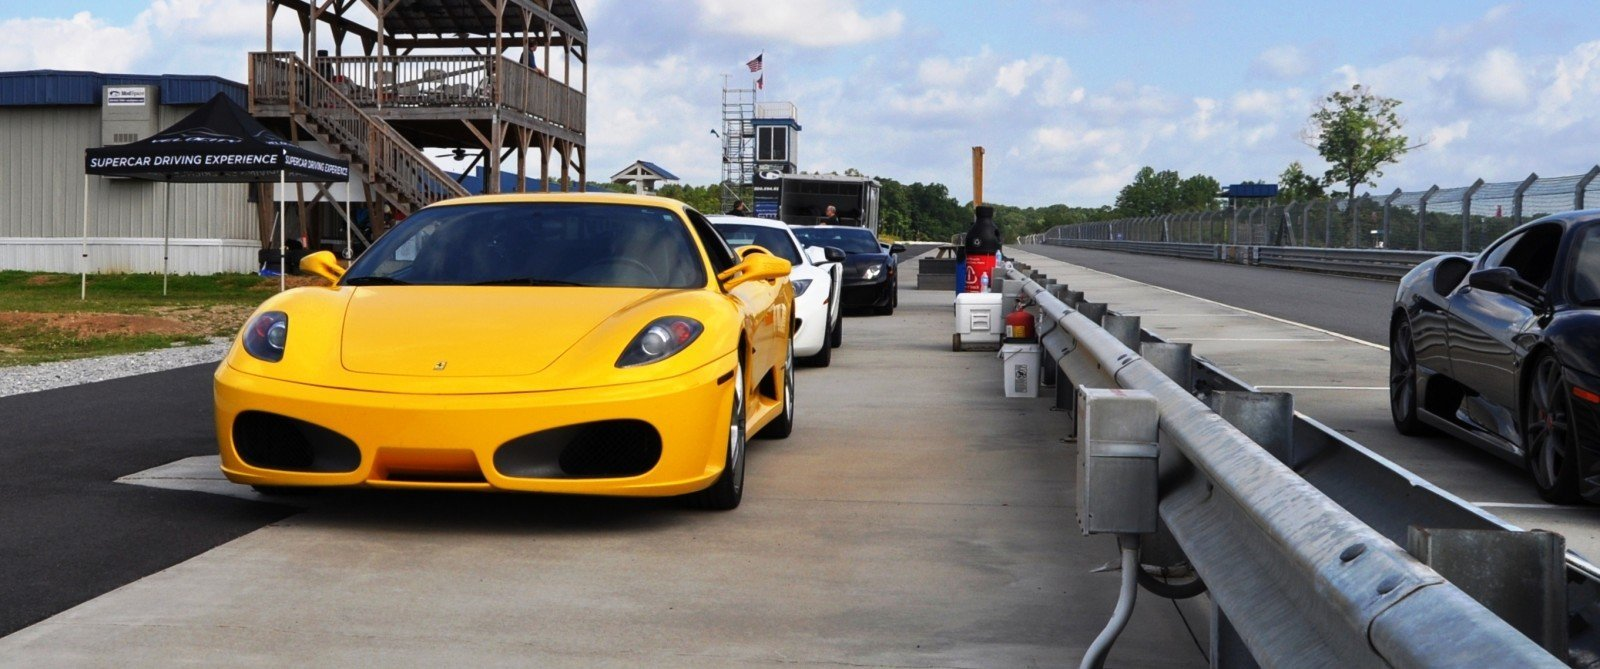 Beating the Supercar Paradox - 2007 Ferrari F430 at Velocity Motorsports Supercar Track Drive 21